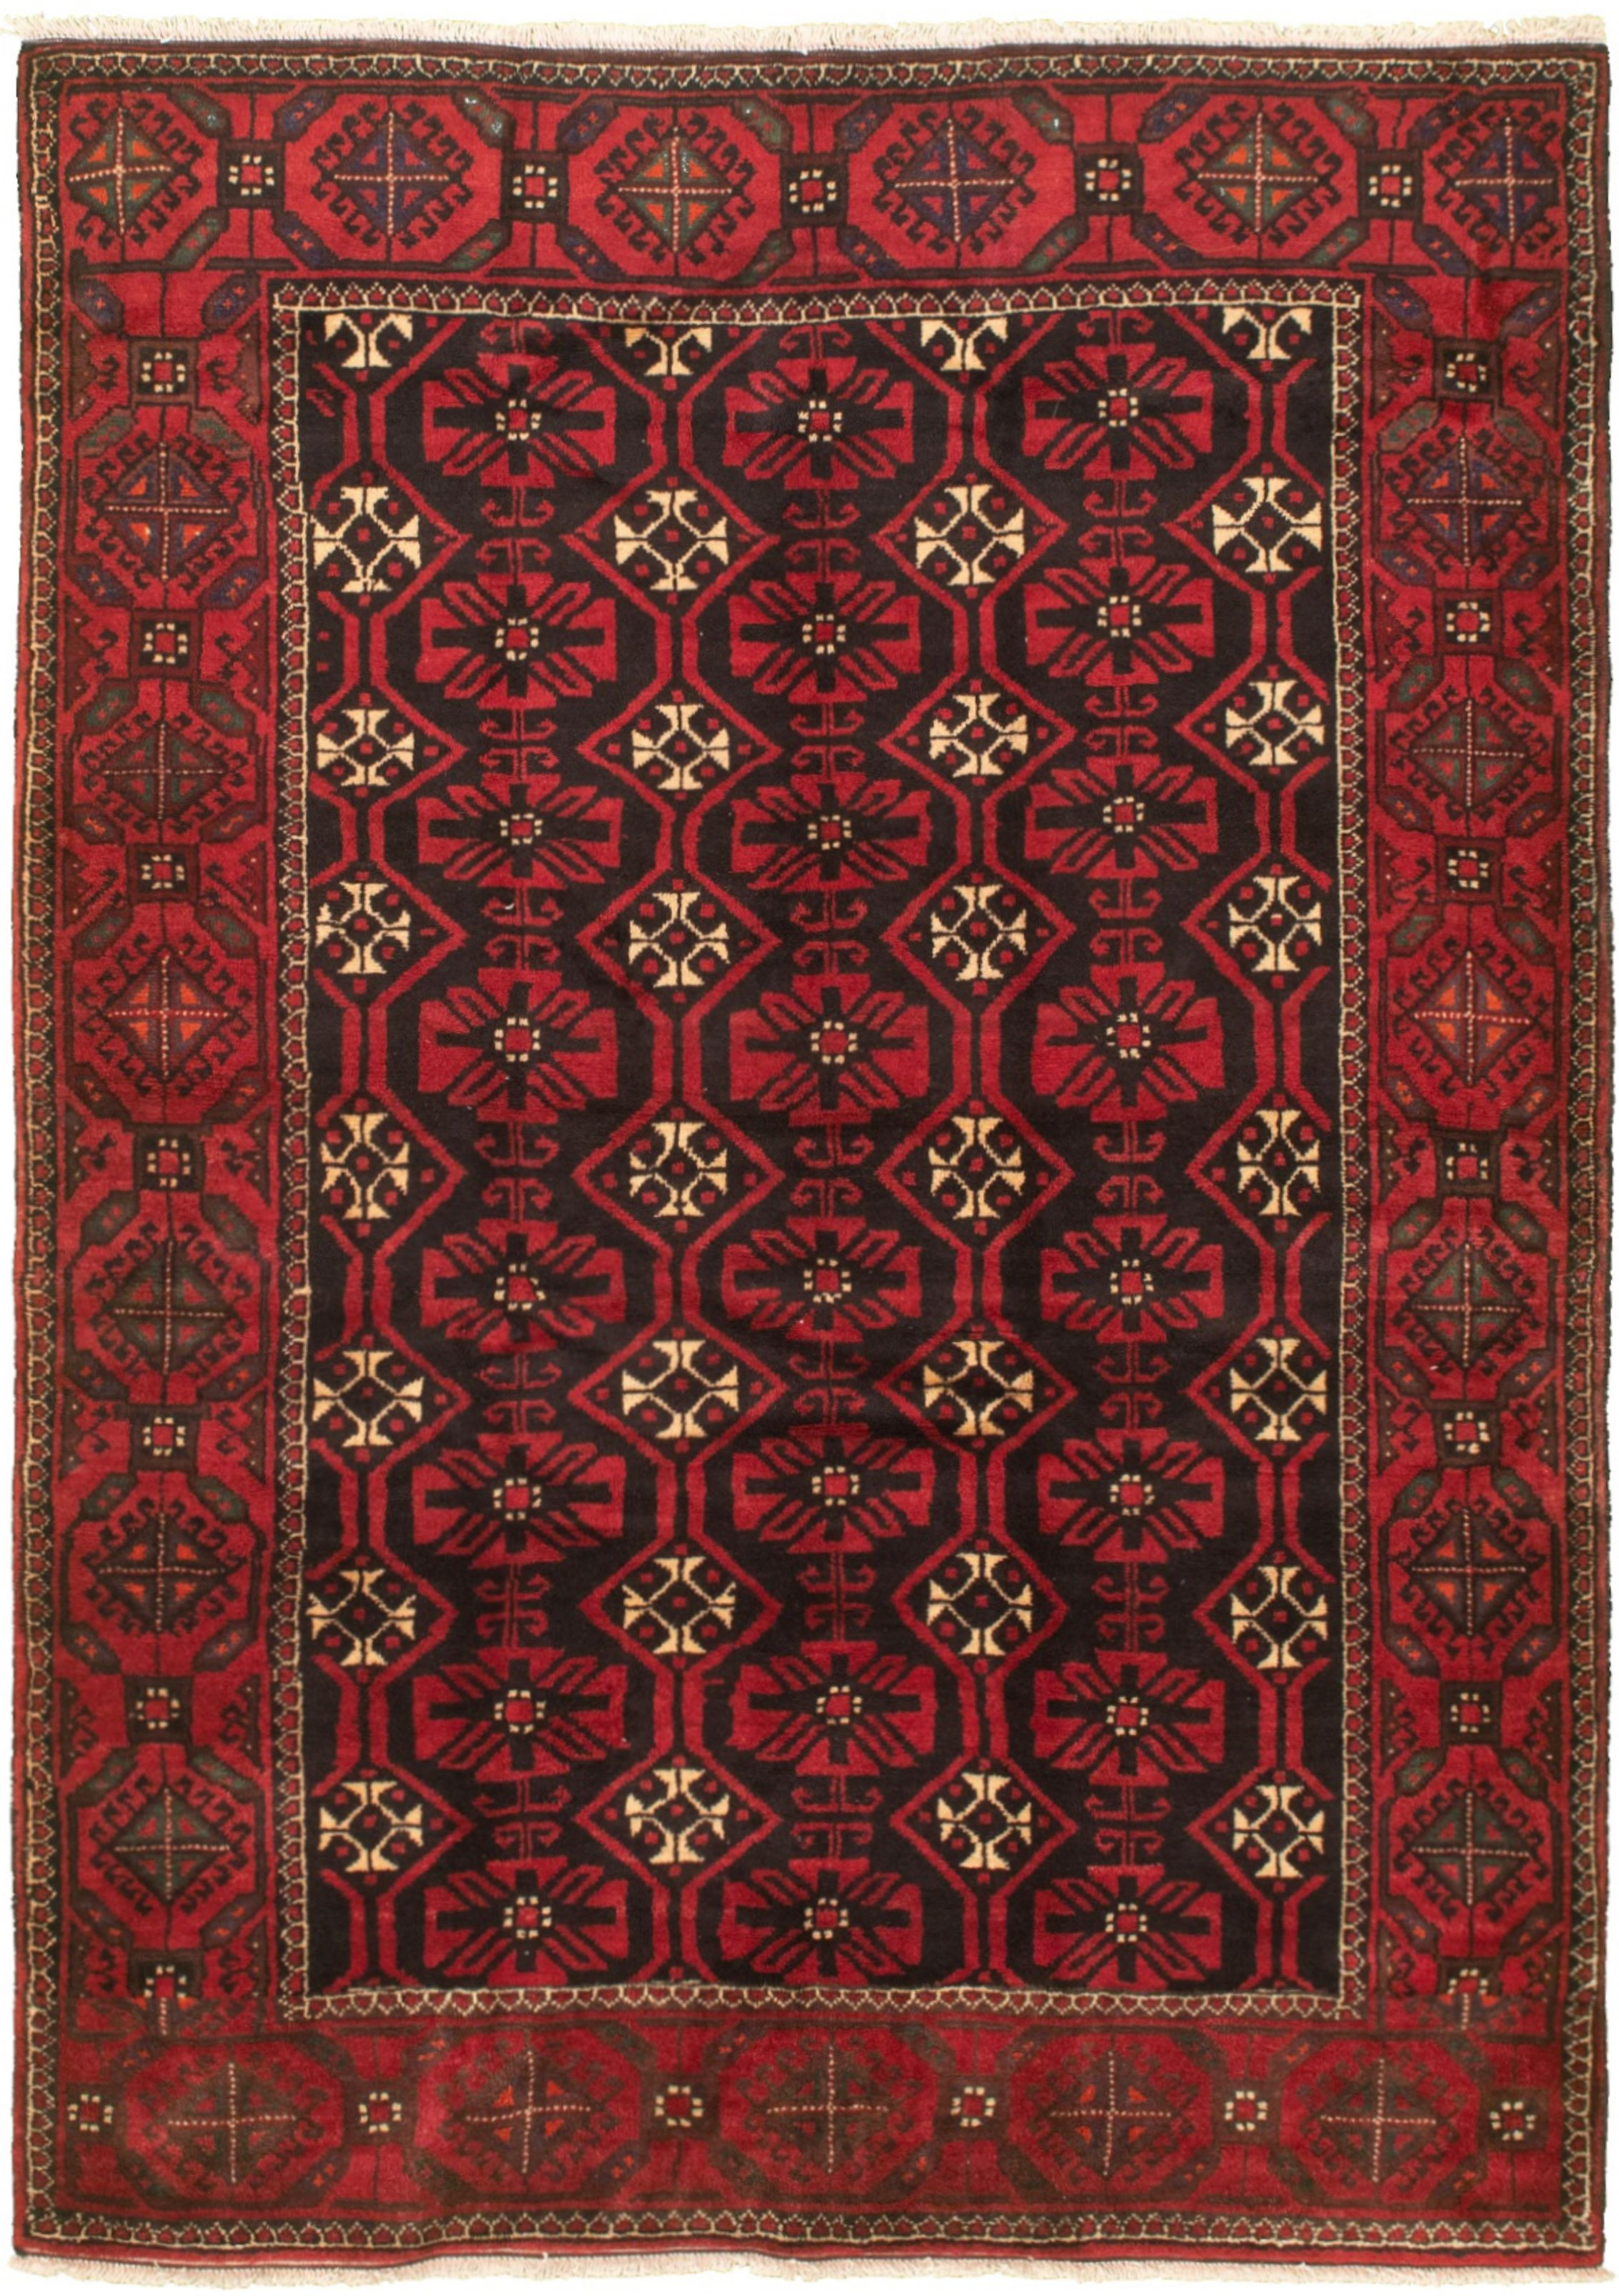 "Hand-knotted Authentic Turkish Black Wool Rug 5'0"" x 7'4"" Size: 5'0"" x 7'4"""